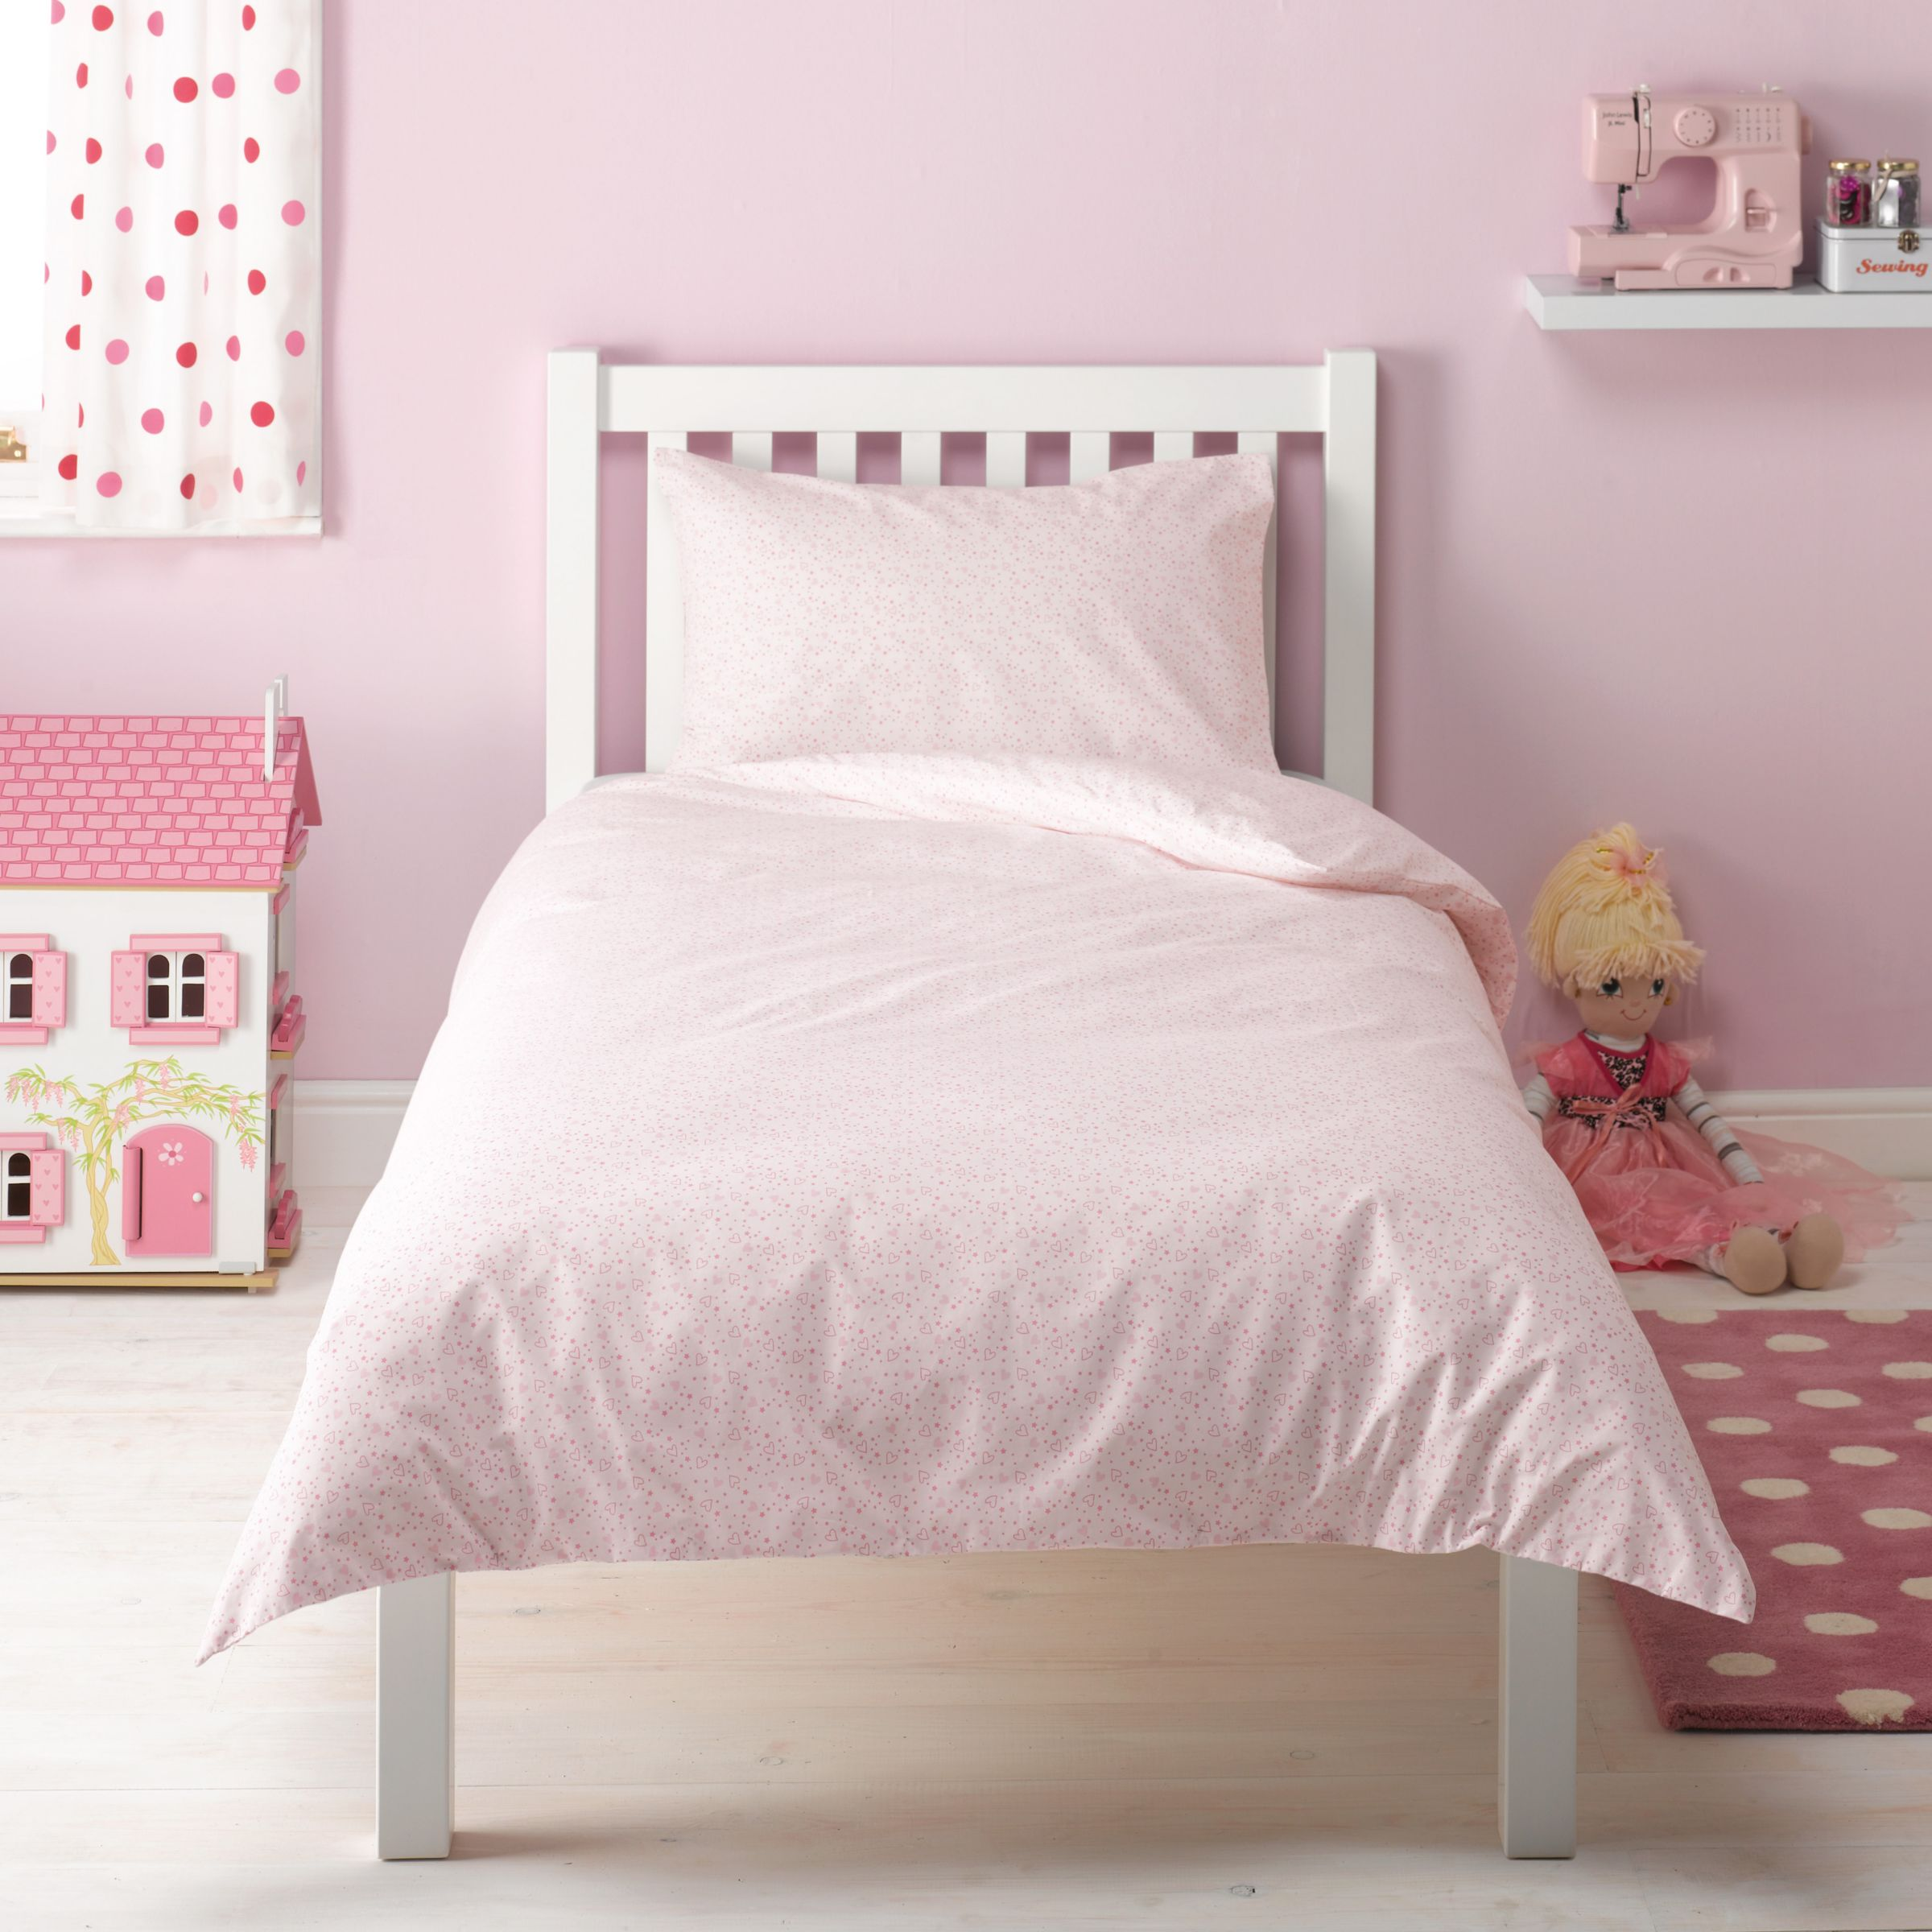 you cover girls teddy duvet to double me design of pink childrens beautiful plain heart kids quilt